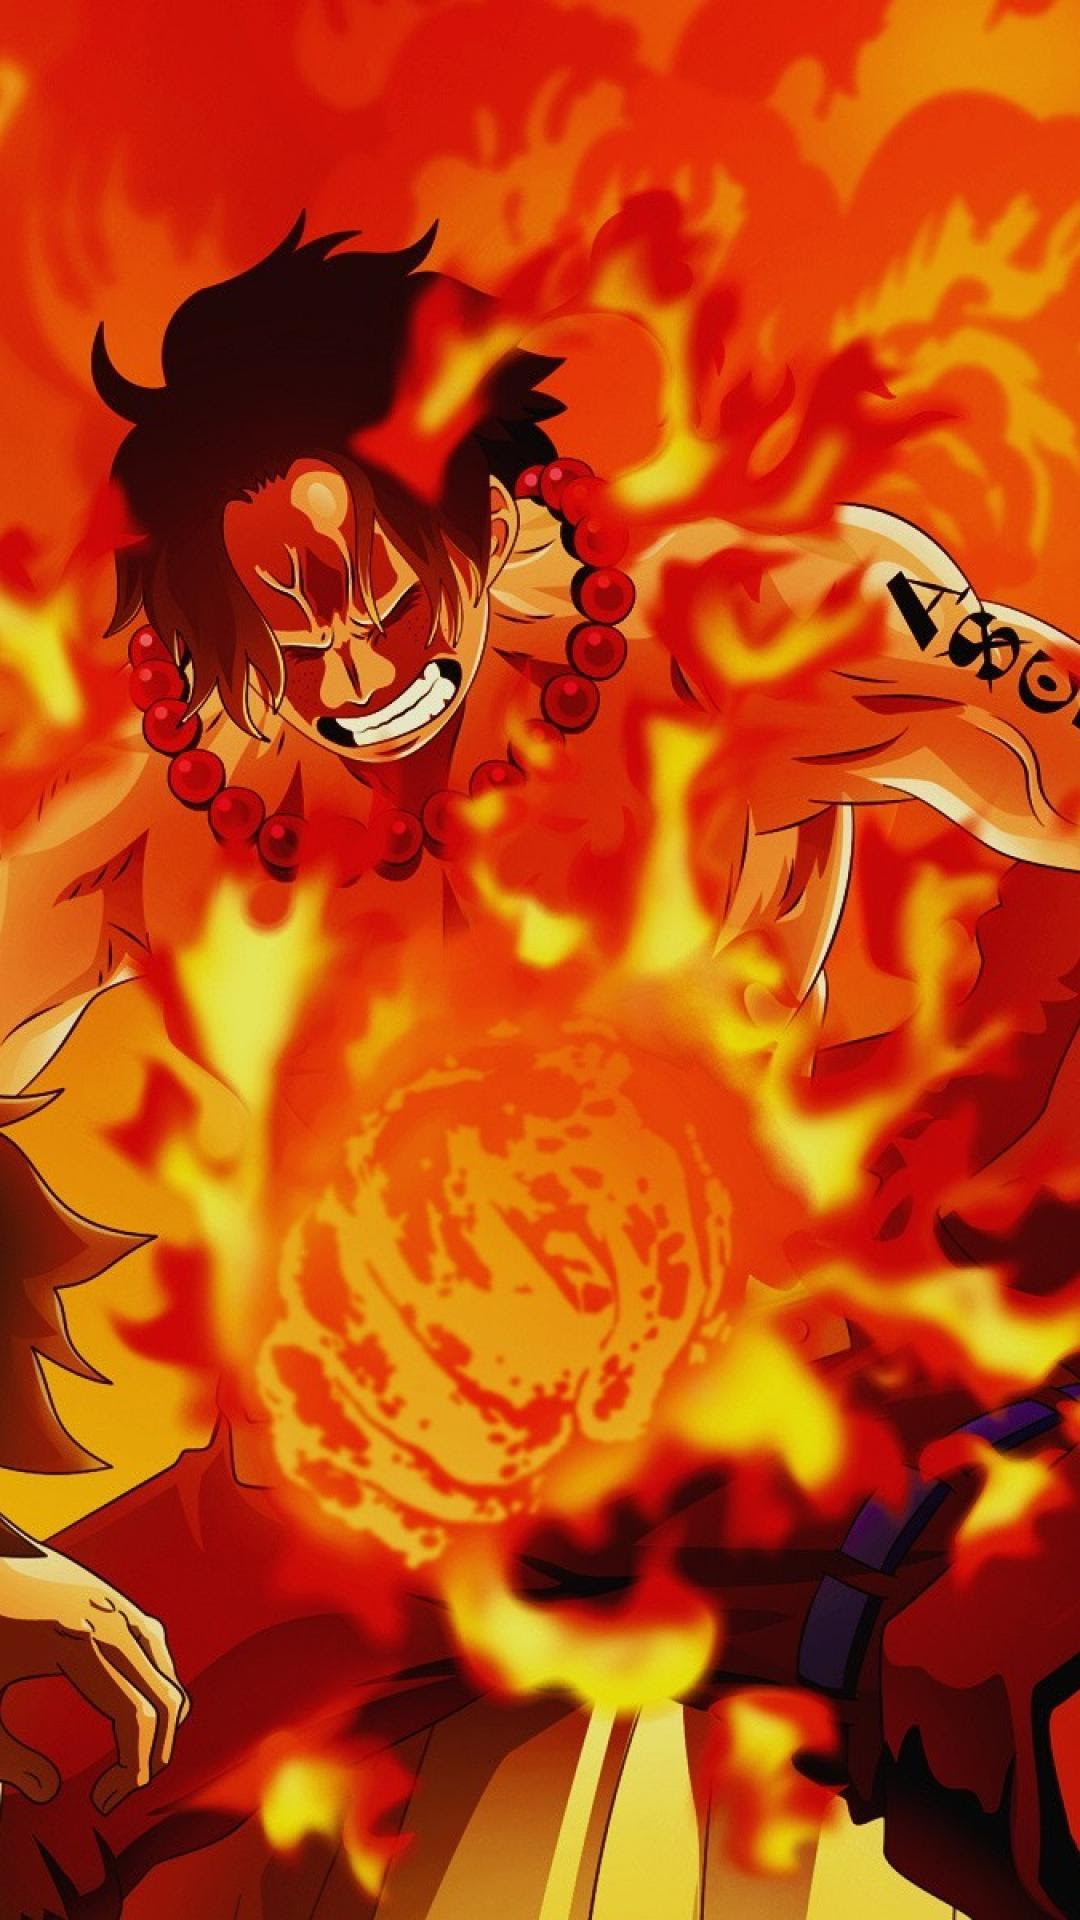 Portgas D One Piece Ace Wallpaper K Download Wallpapers Vel